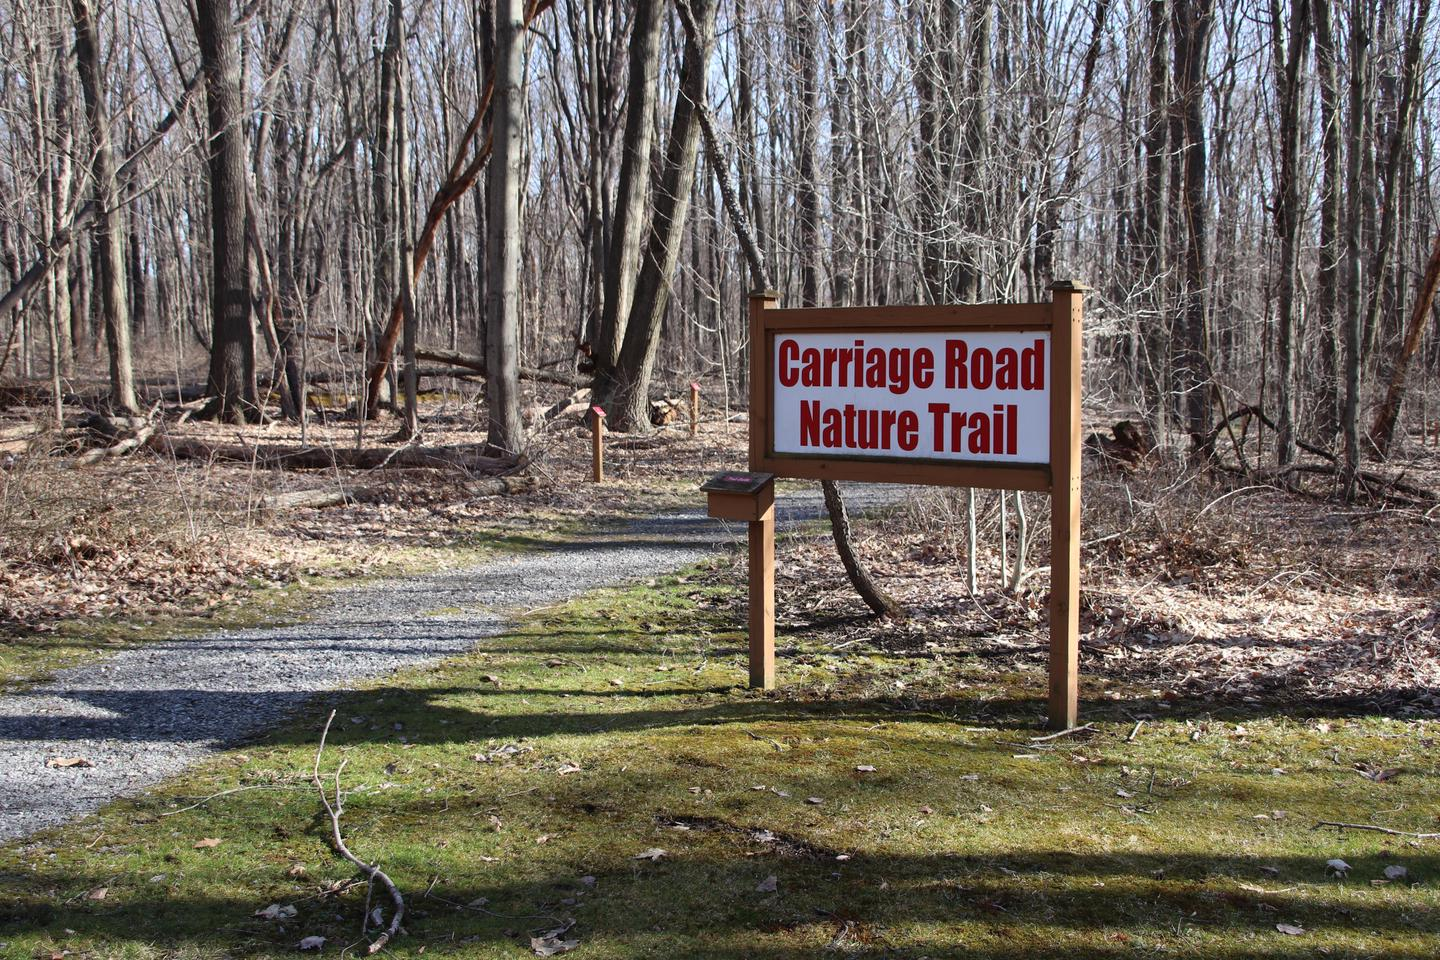 The Carriage Road Nature Trail can be accessed from the picnic area or near the South Abutment.